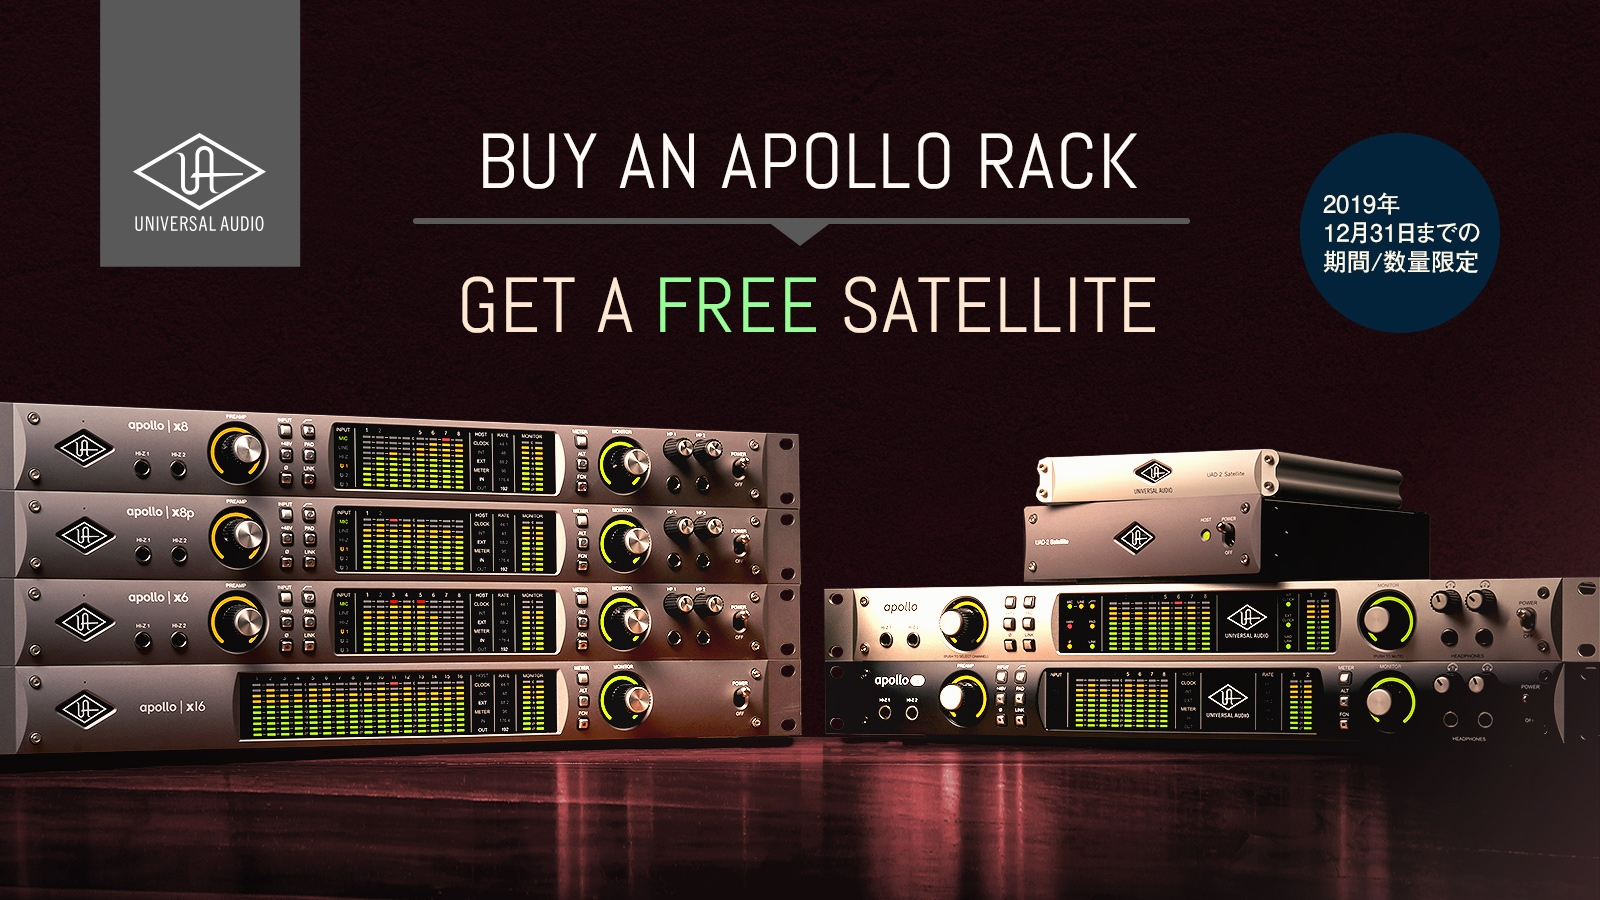 2019Q4-Apollo-Rack-FREE-Satellite-Promo-Cover.jpg